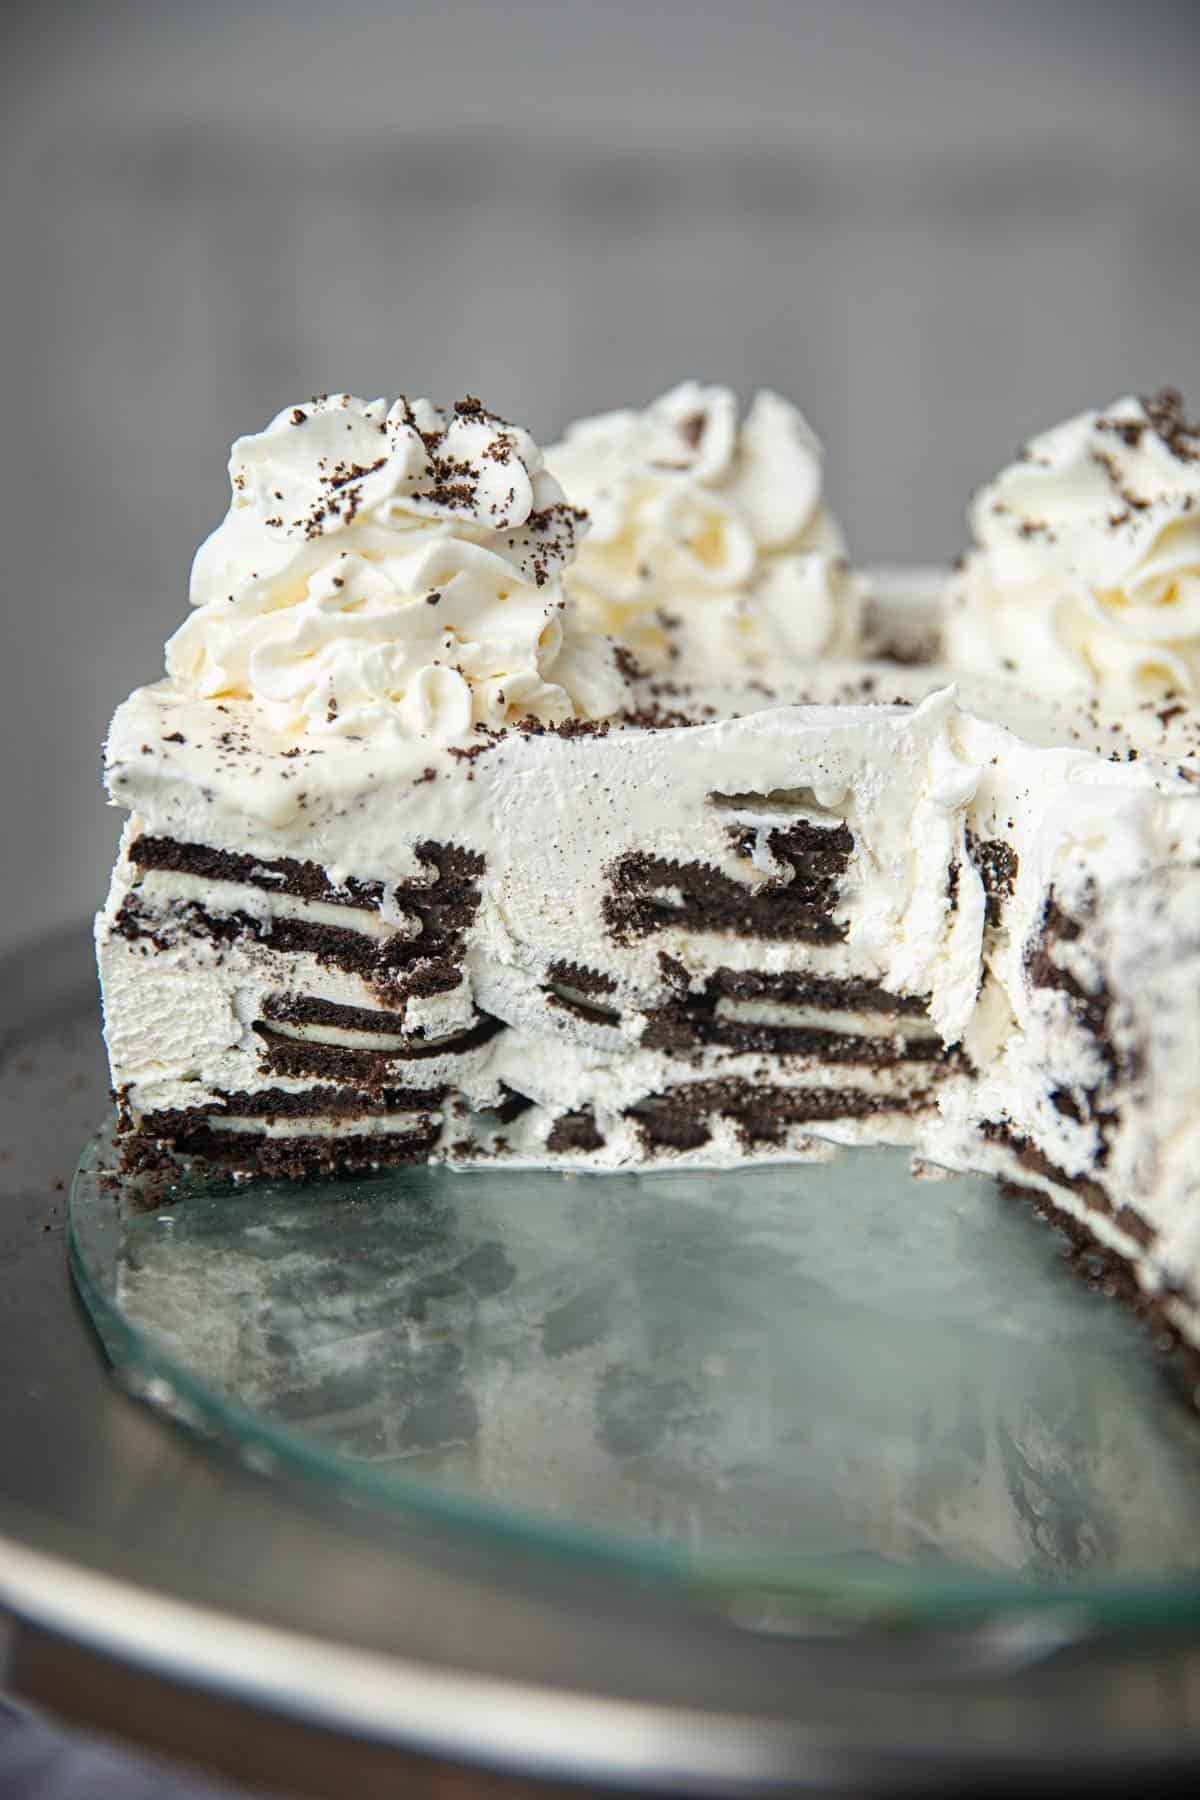 Oreo Ice Box Cake is an easy no bake dessert with Oreos and whipped cream (or cool whip!) you can serve all summer long! Ice Box Cake is an easy no bake dessert with Oreos and whipped cream (or cool whip!) you can serve all summer long!